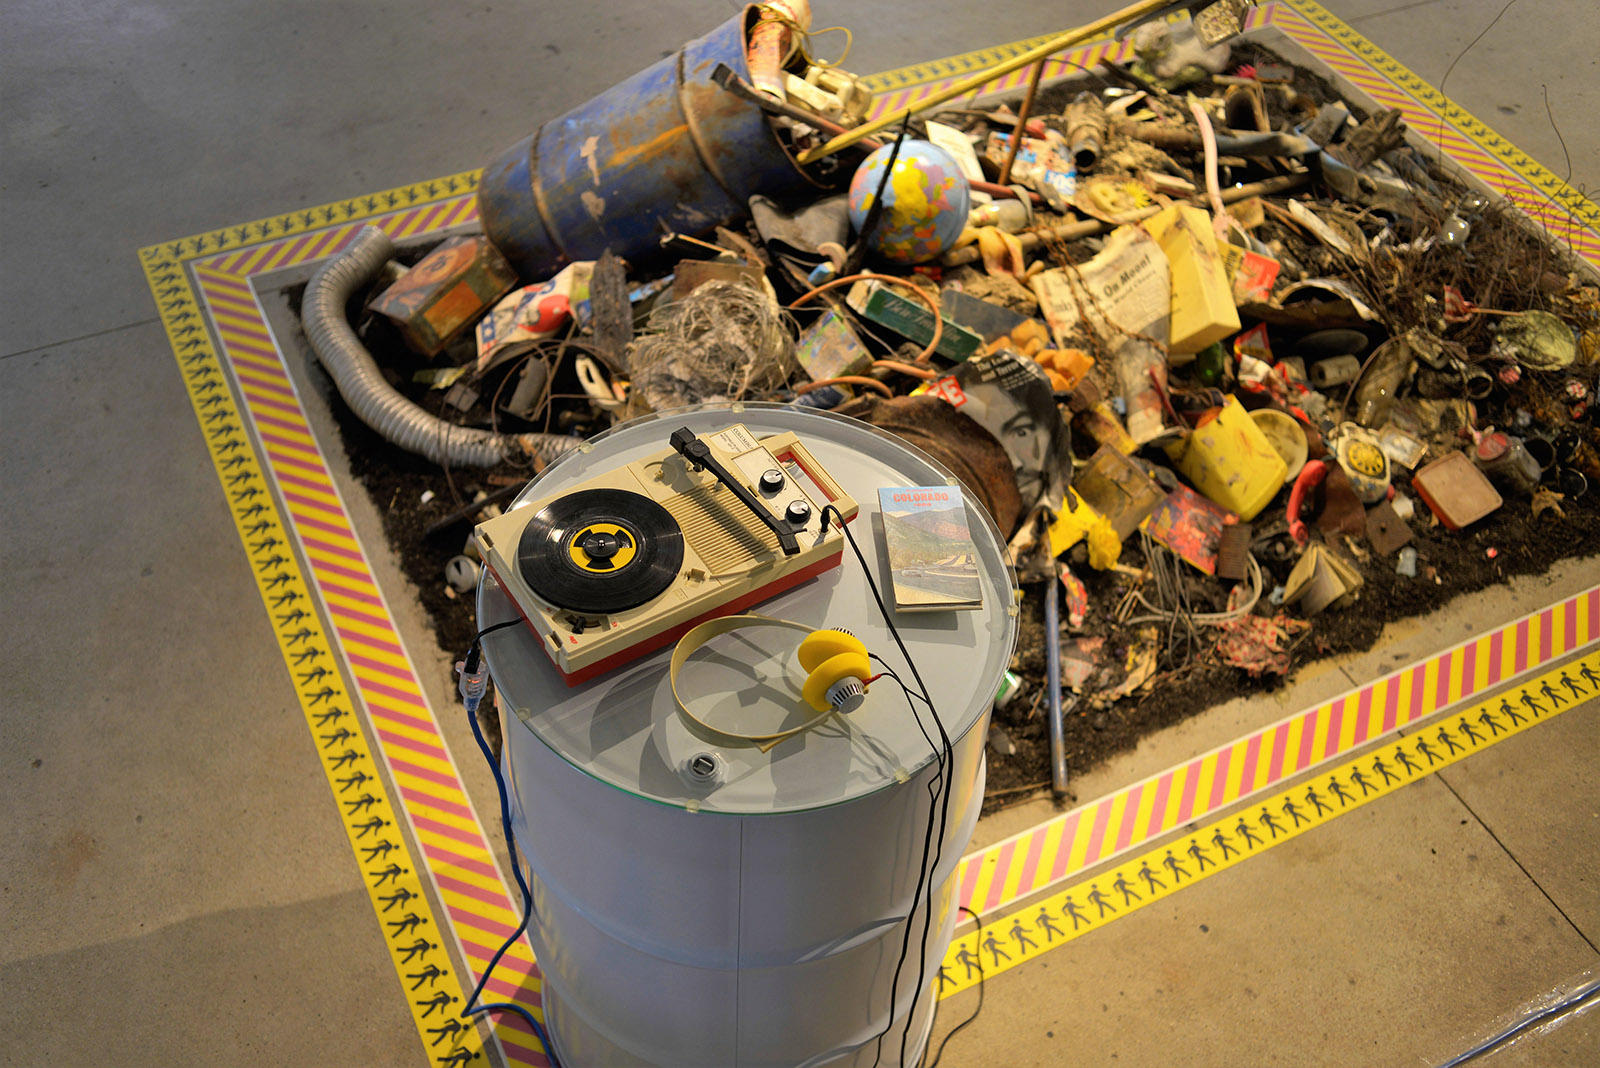 A vintage plastic record player sits on a waste drum amidst an installation of debris.